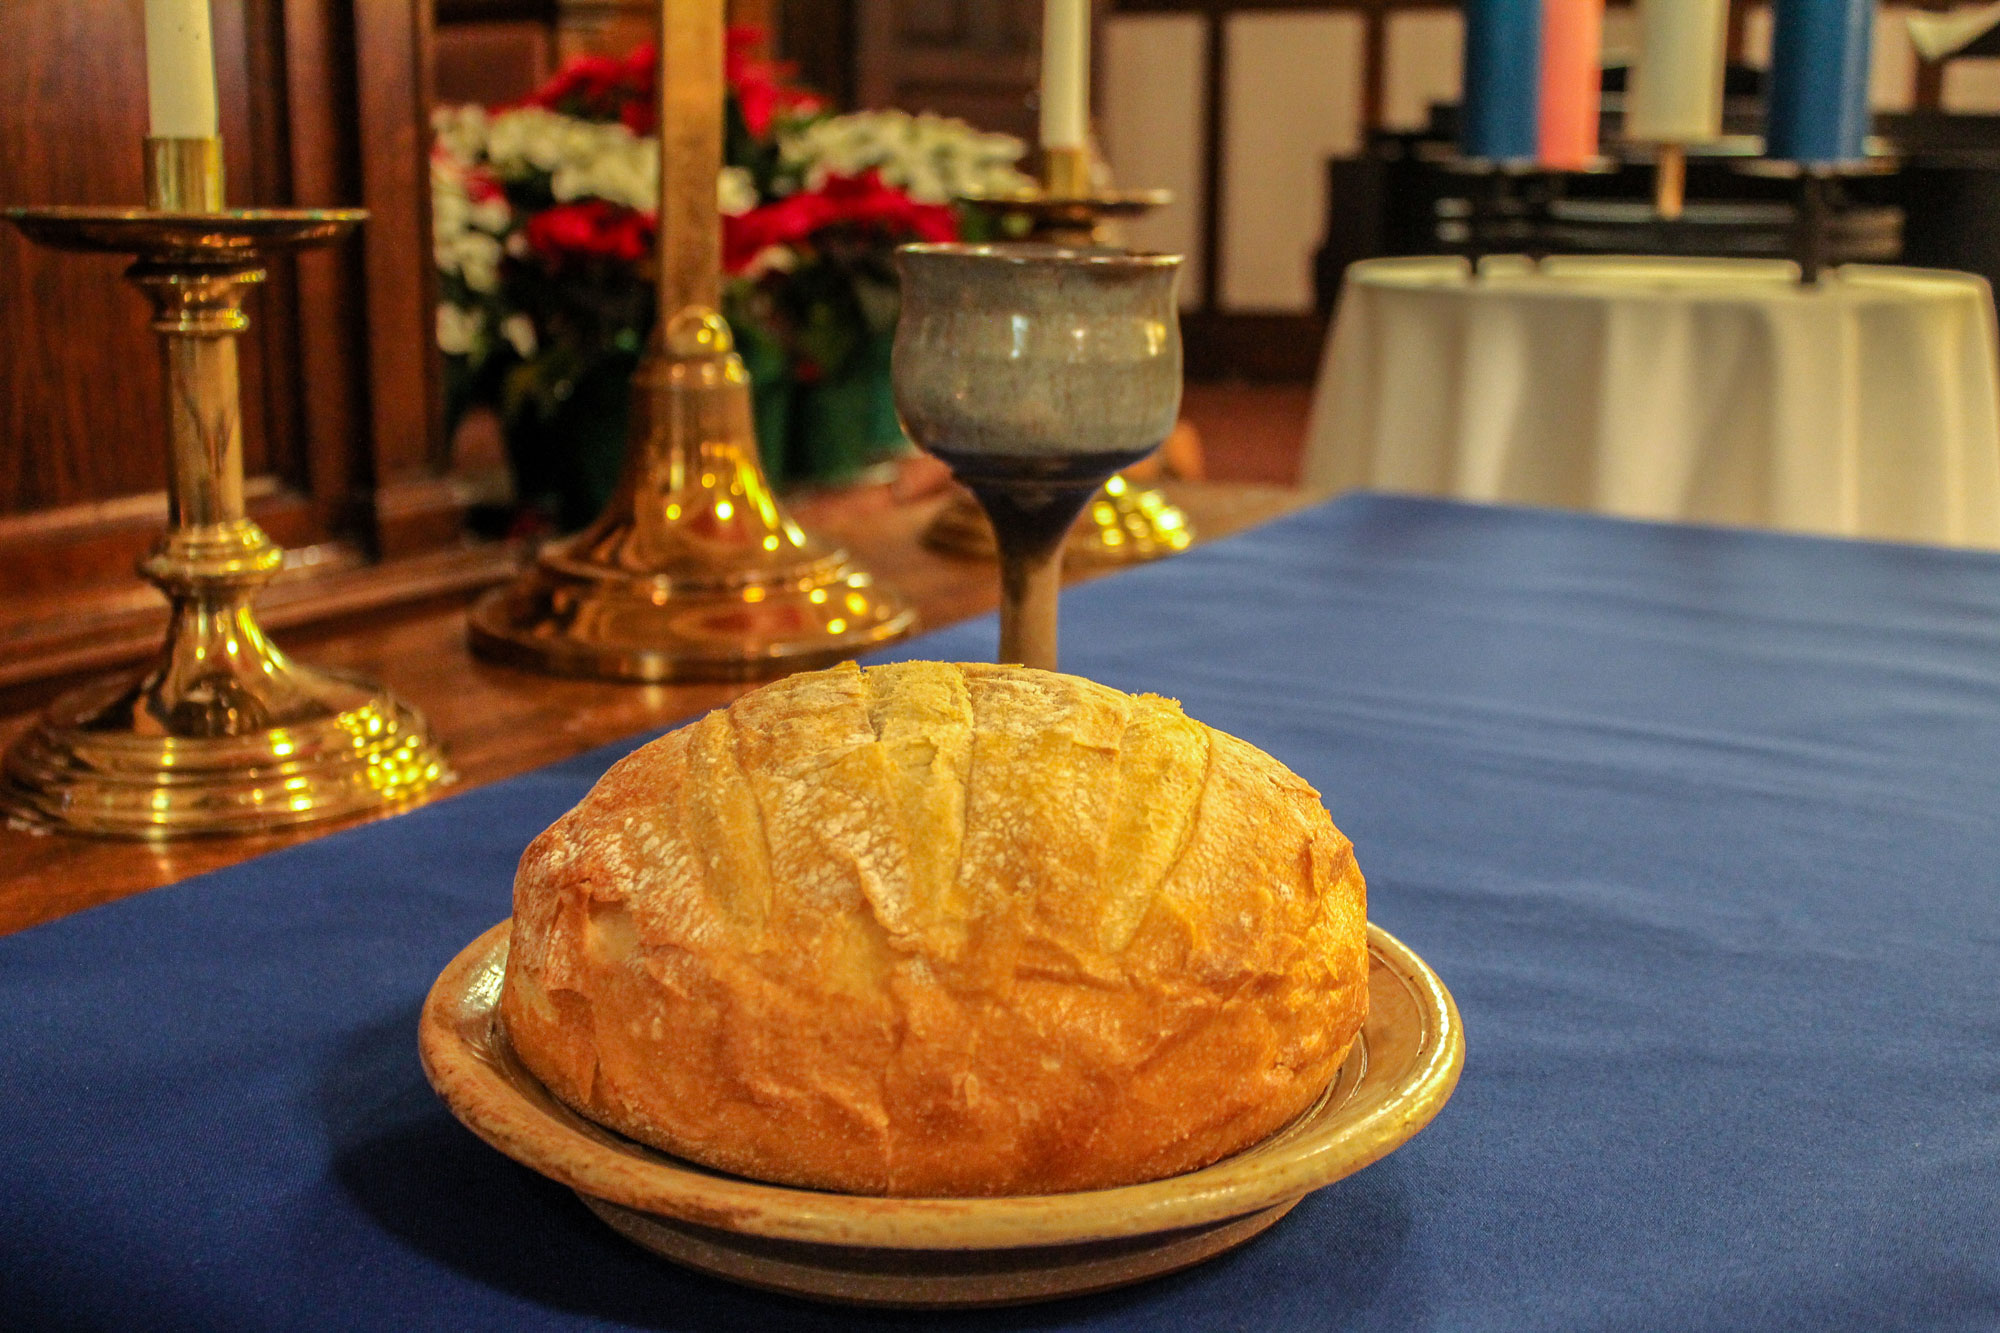 Communion bread at an open table